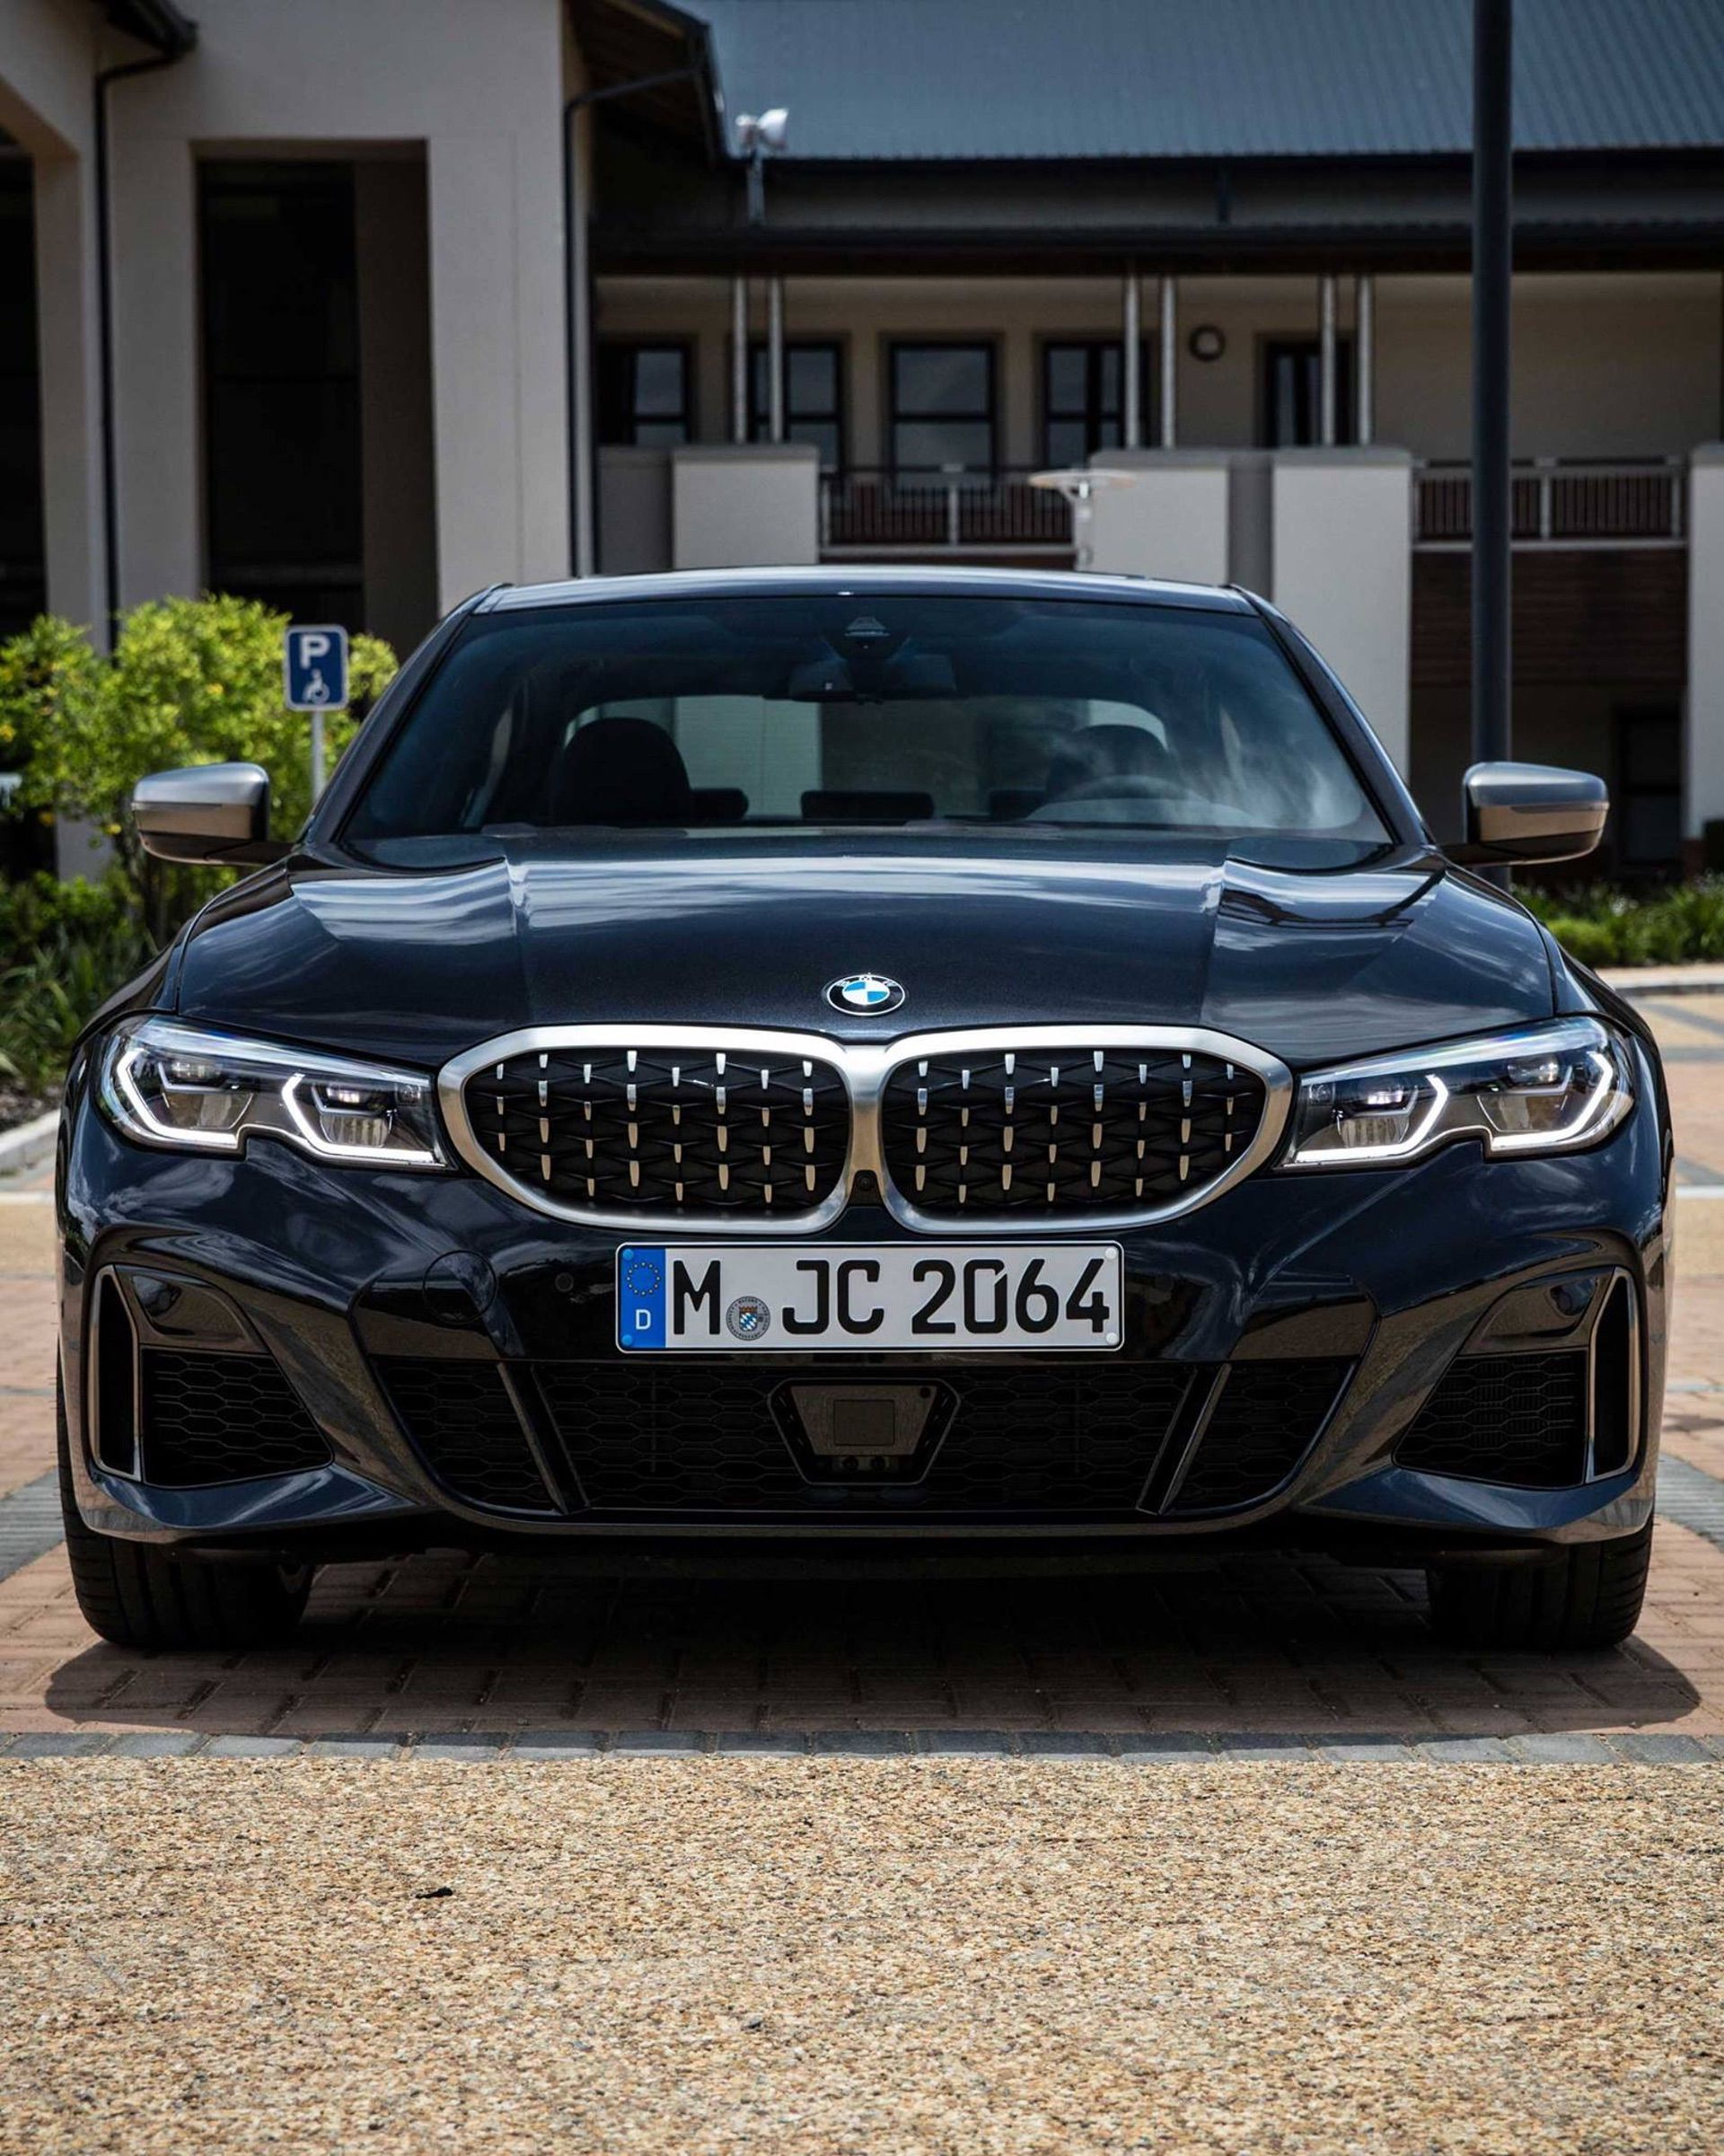 New Photos Of The Bmw M340i G20 In Black With Images New Bmw